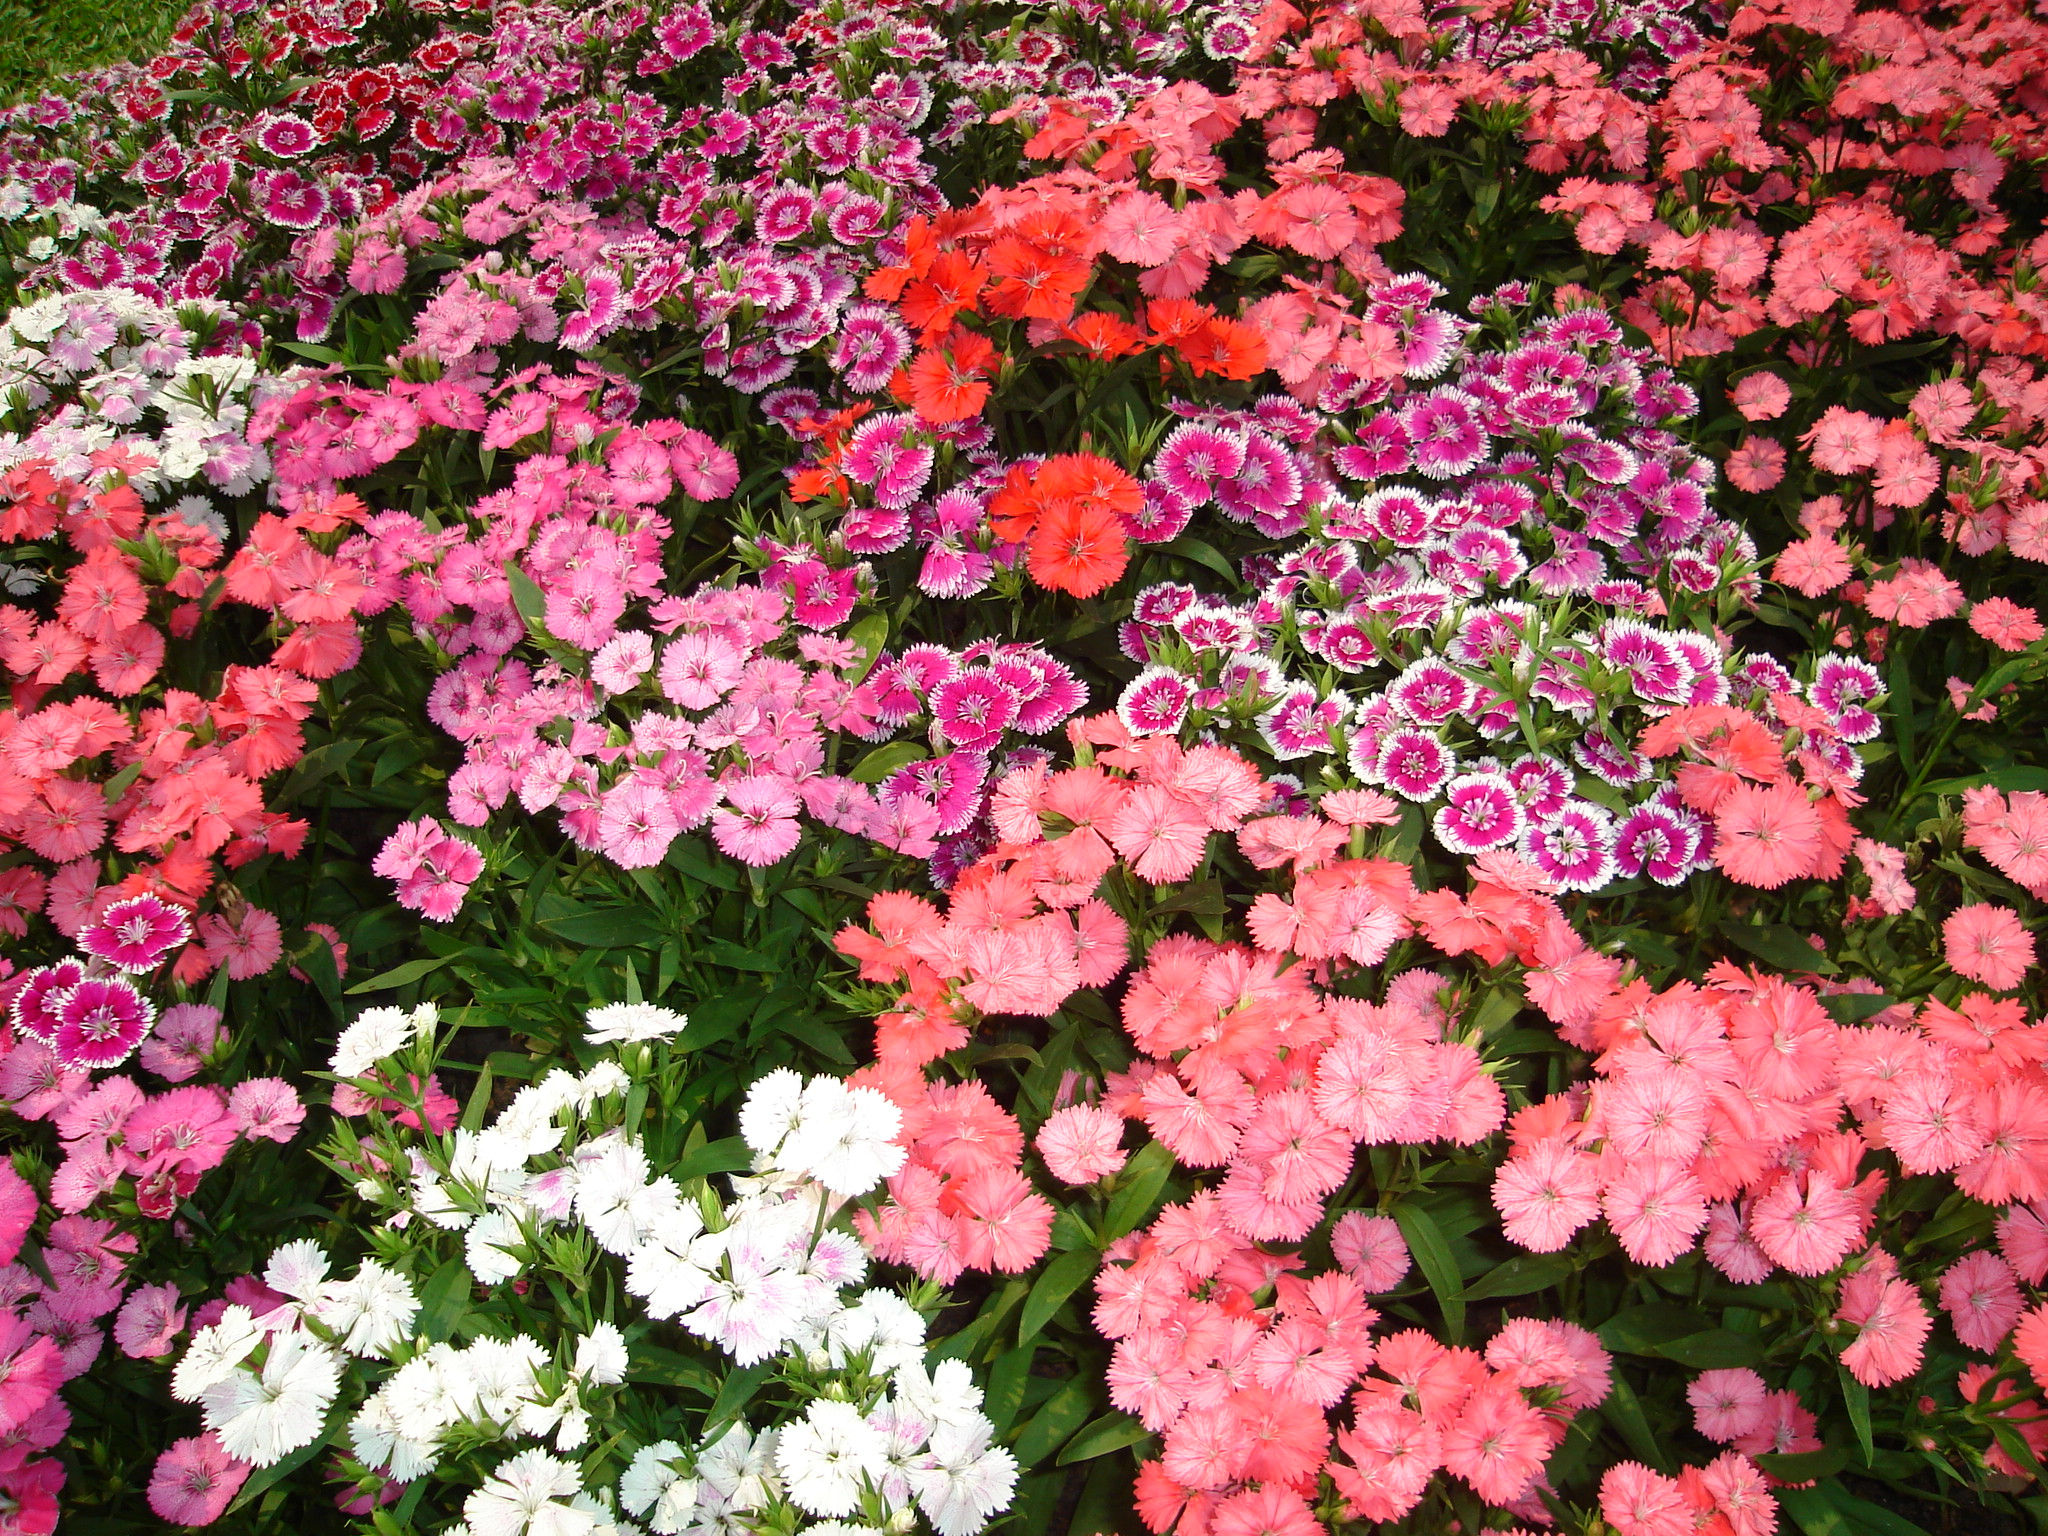 FileFlower garden found in Tak Thailand 1jpg Wikimedia Commons